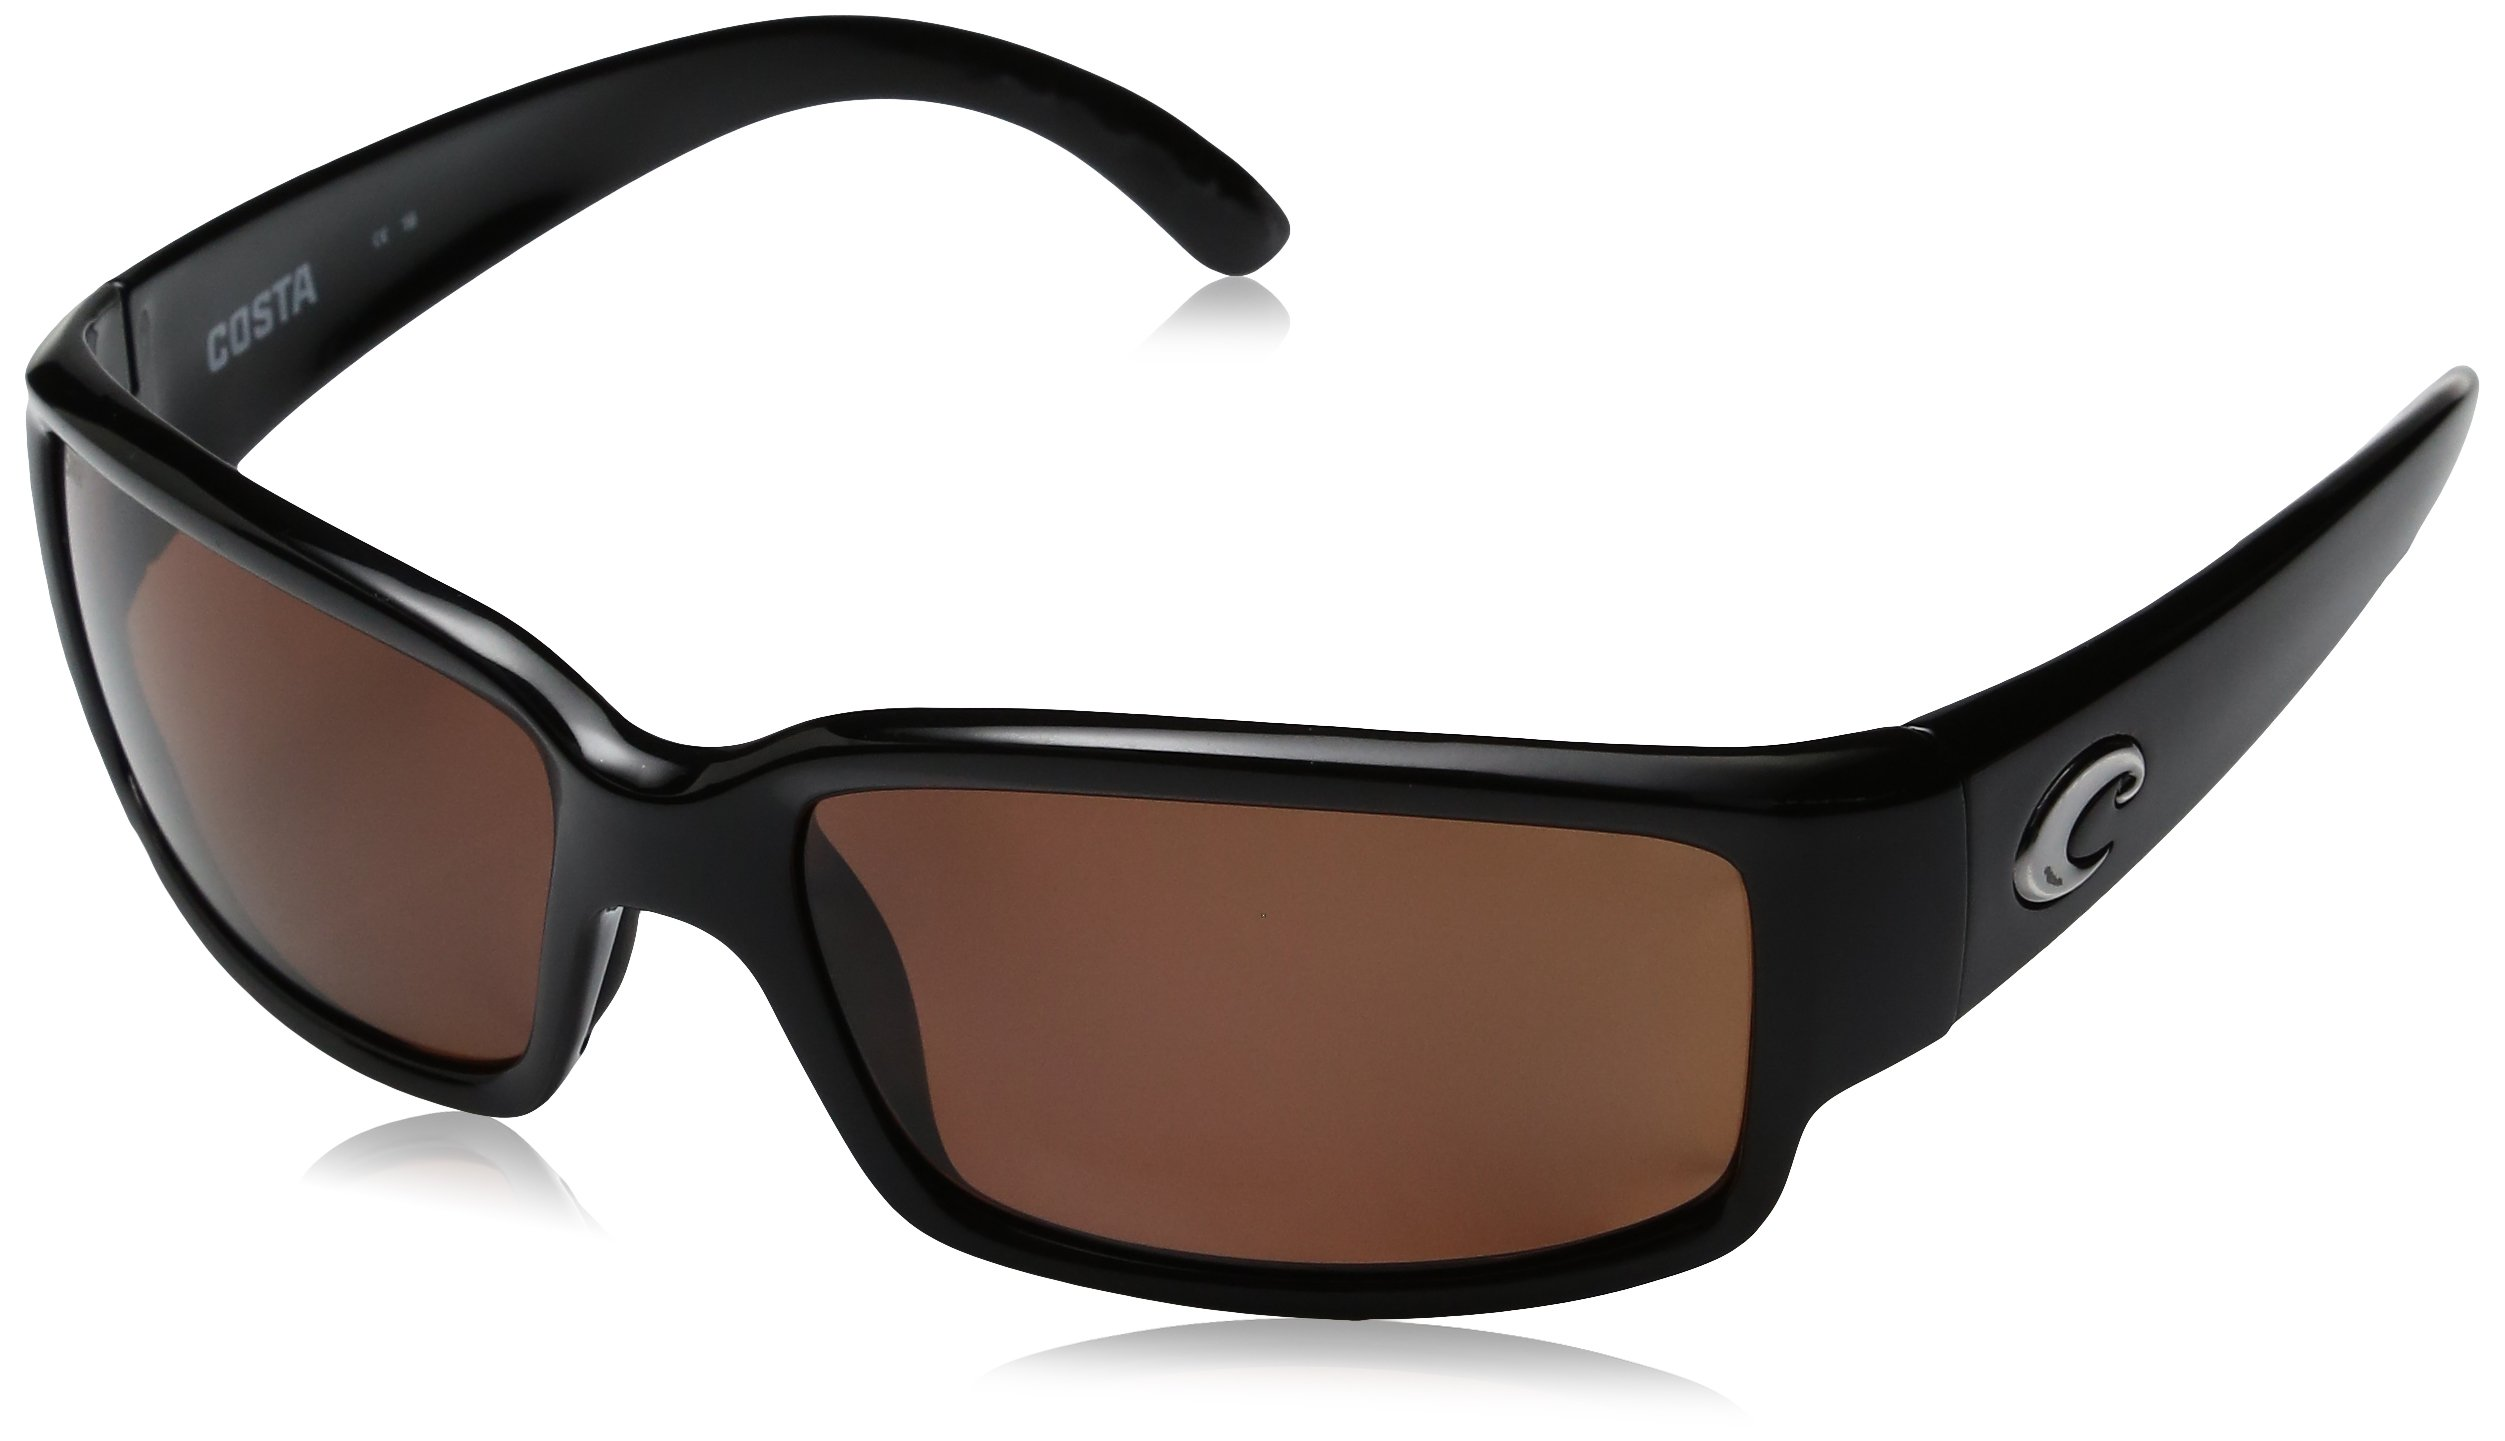 Costa Del Mar Caballito Sunglass, Black/Copper 580Plastic